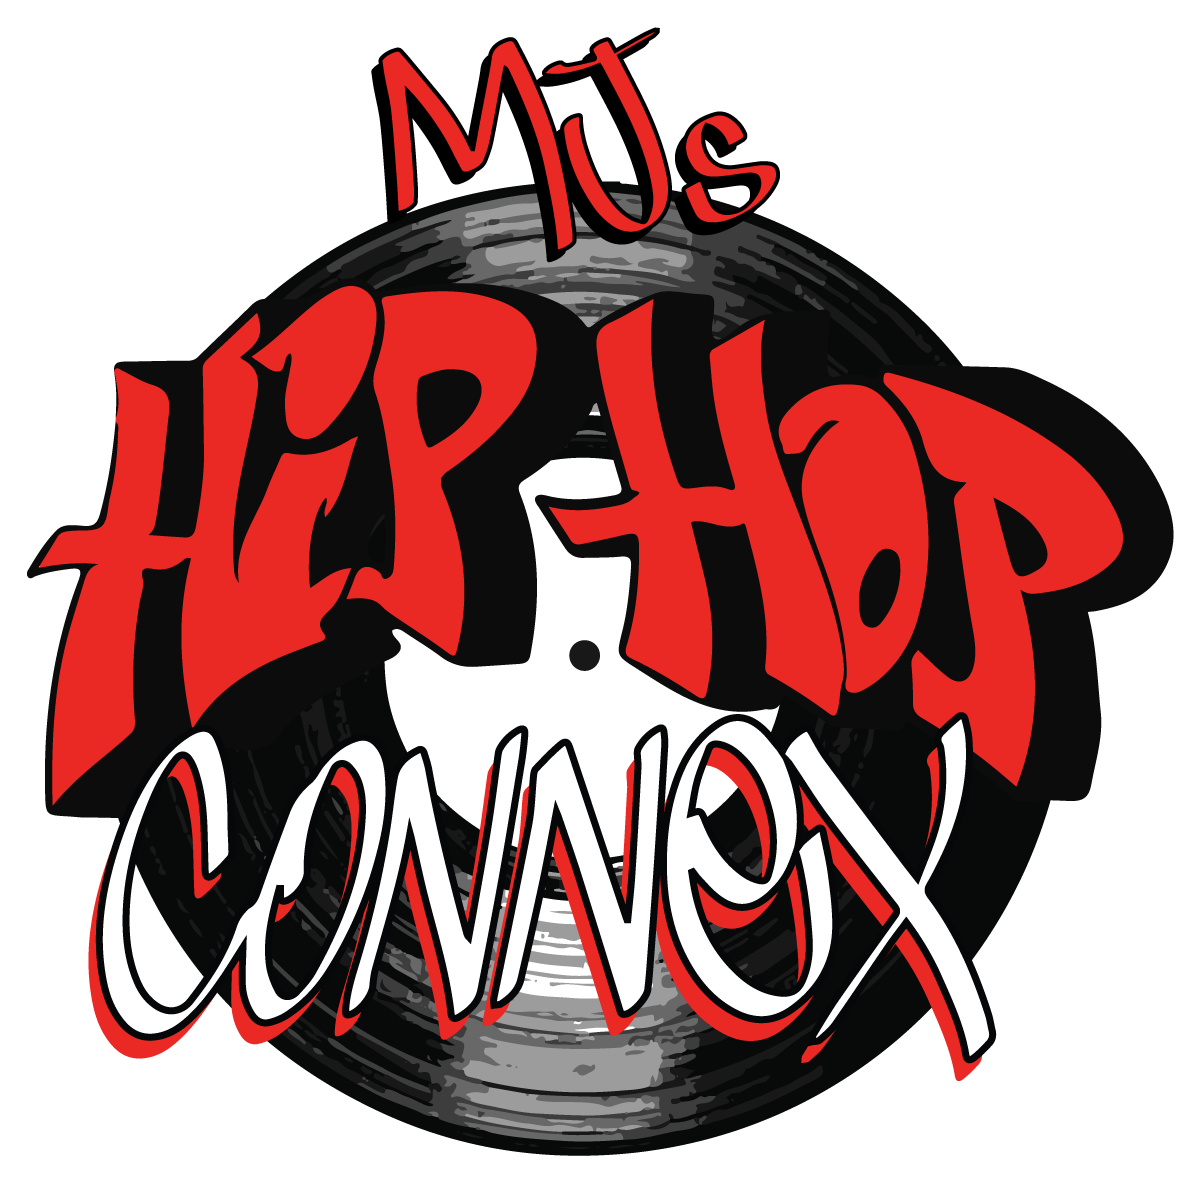 MJs HipHop Connex